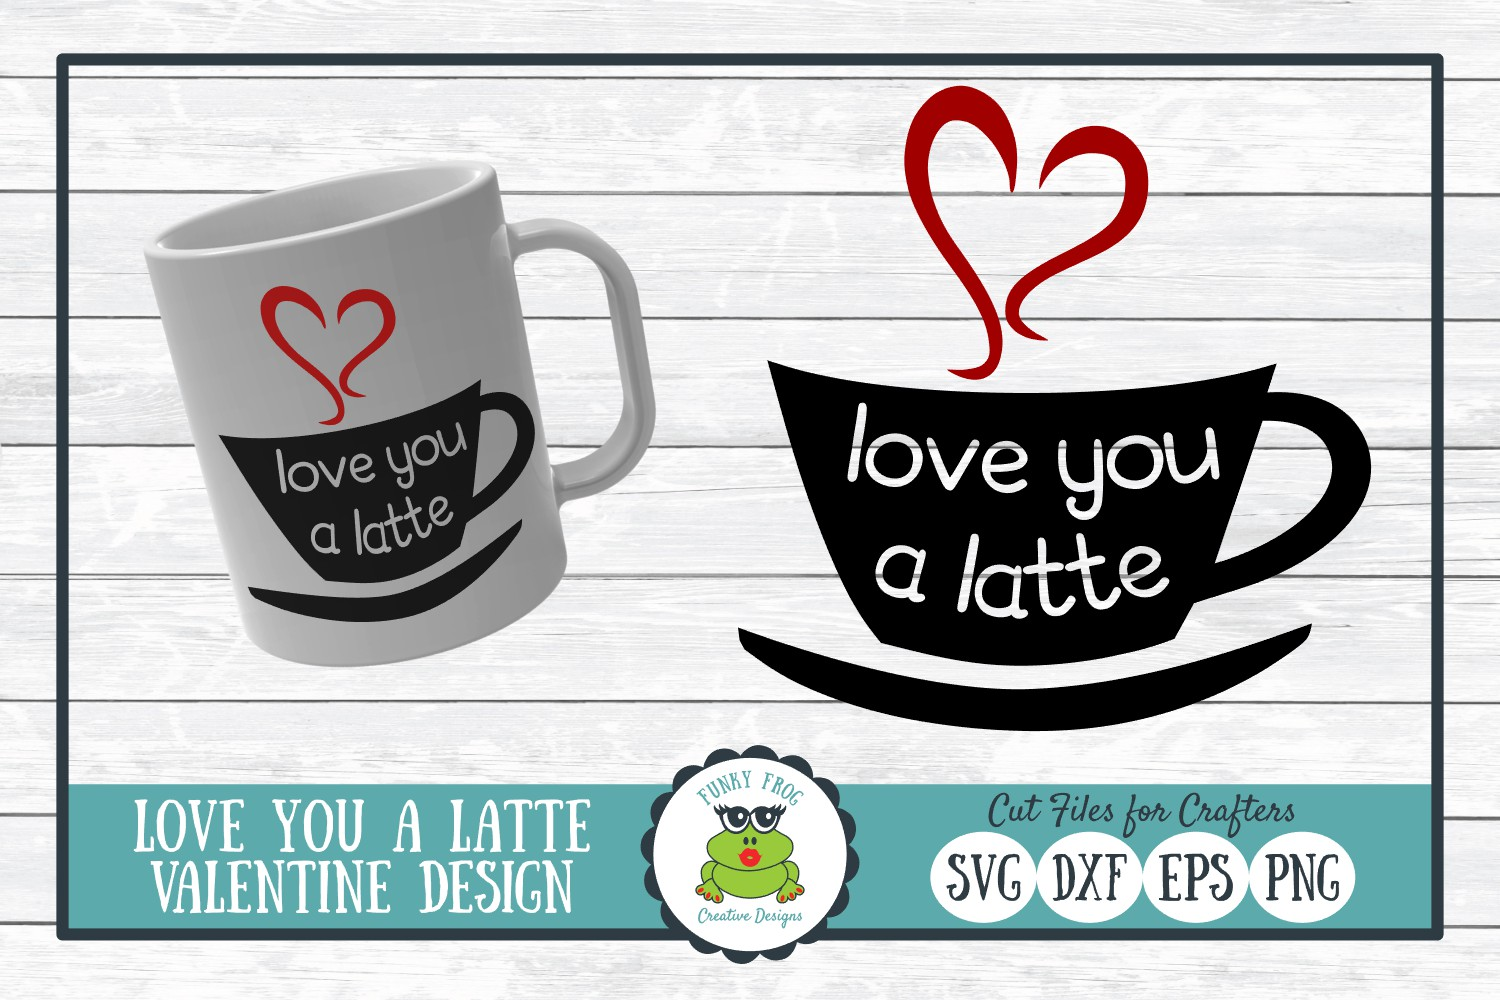 Download Free Love You A Latte Valentine Graphic By Funkyfrogcreativedesigns for Cricut Explore, Silhouette and other cutting machines.